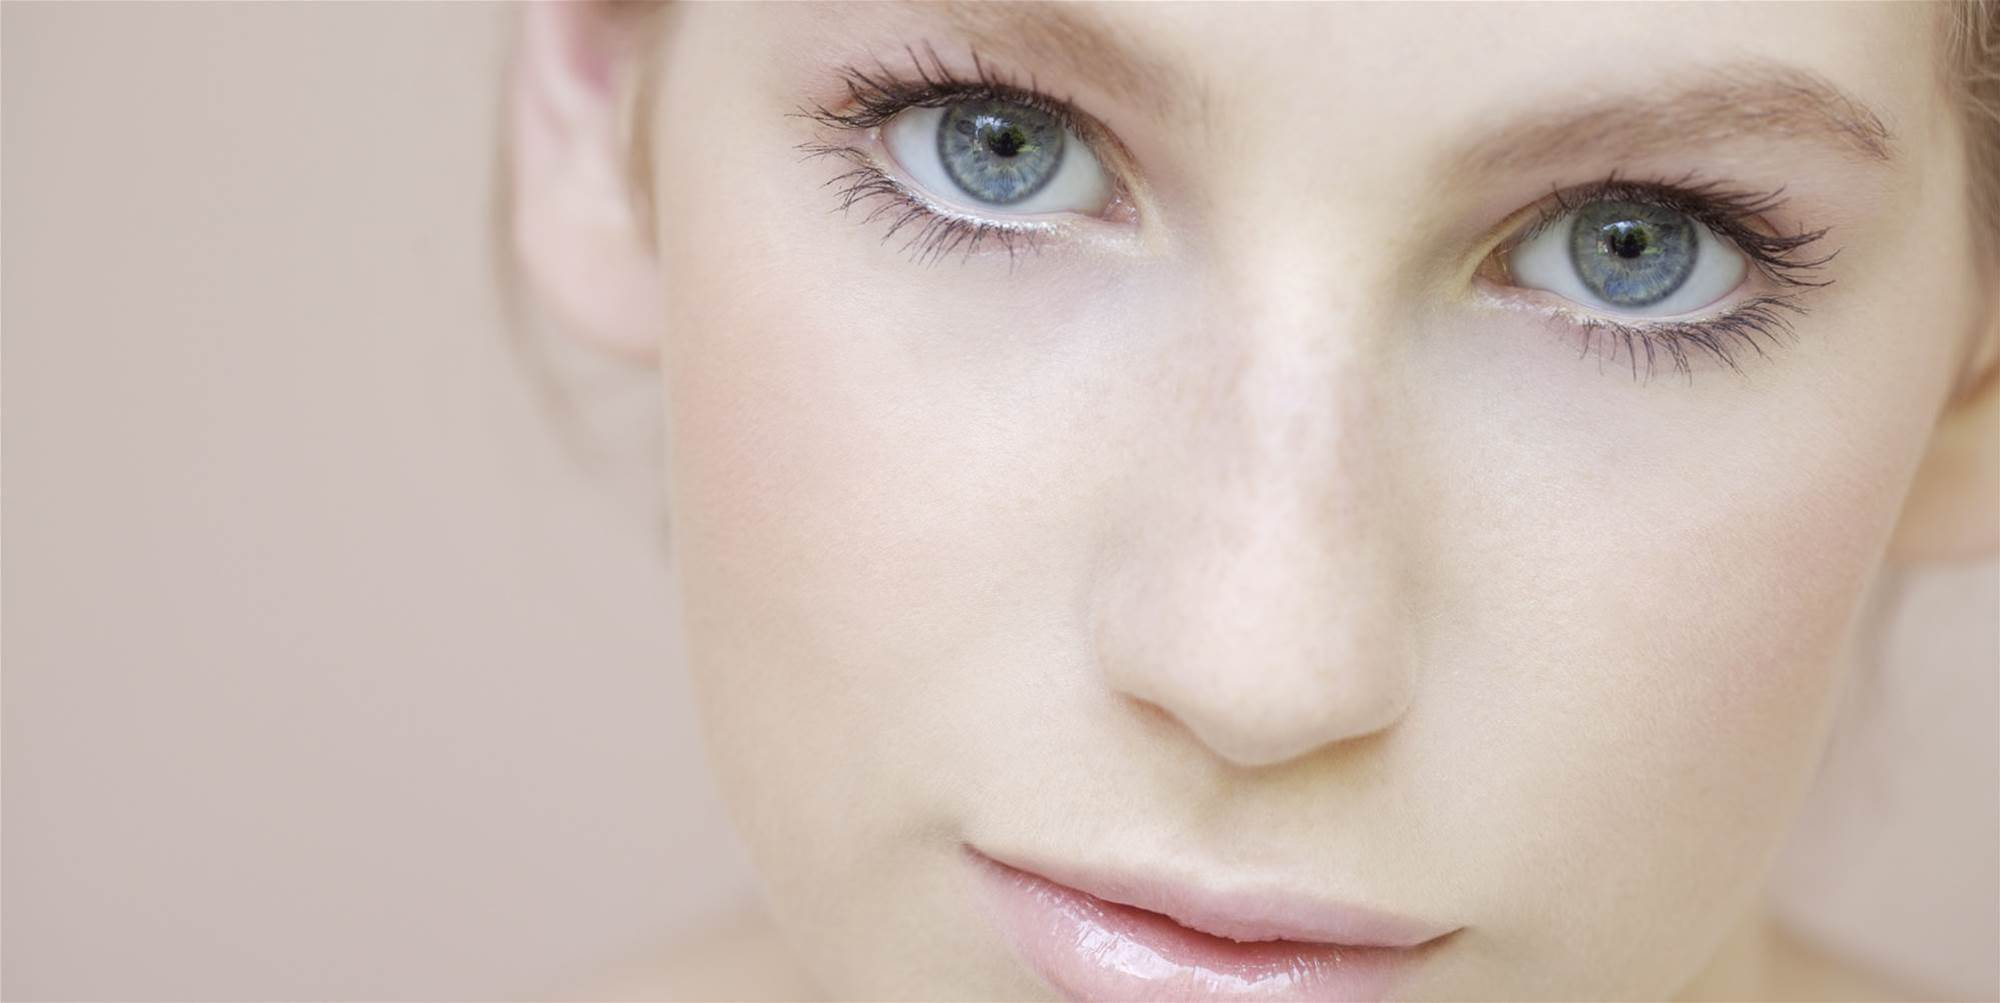 The 5 Best Ways to Shrink Your Pores, According to Dermatologists